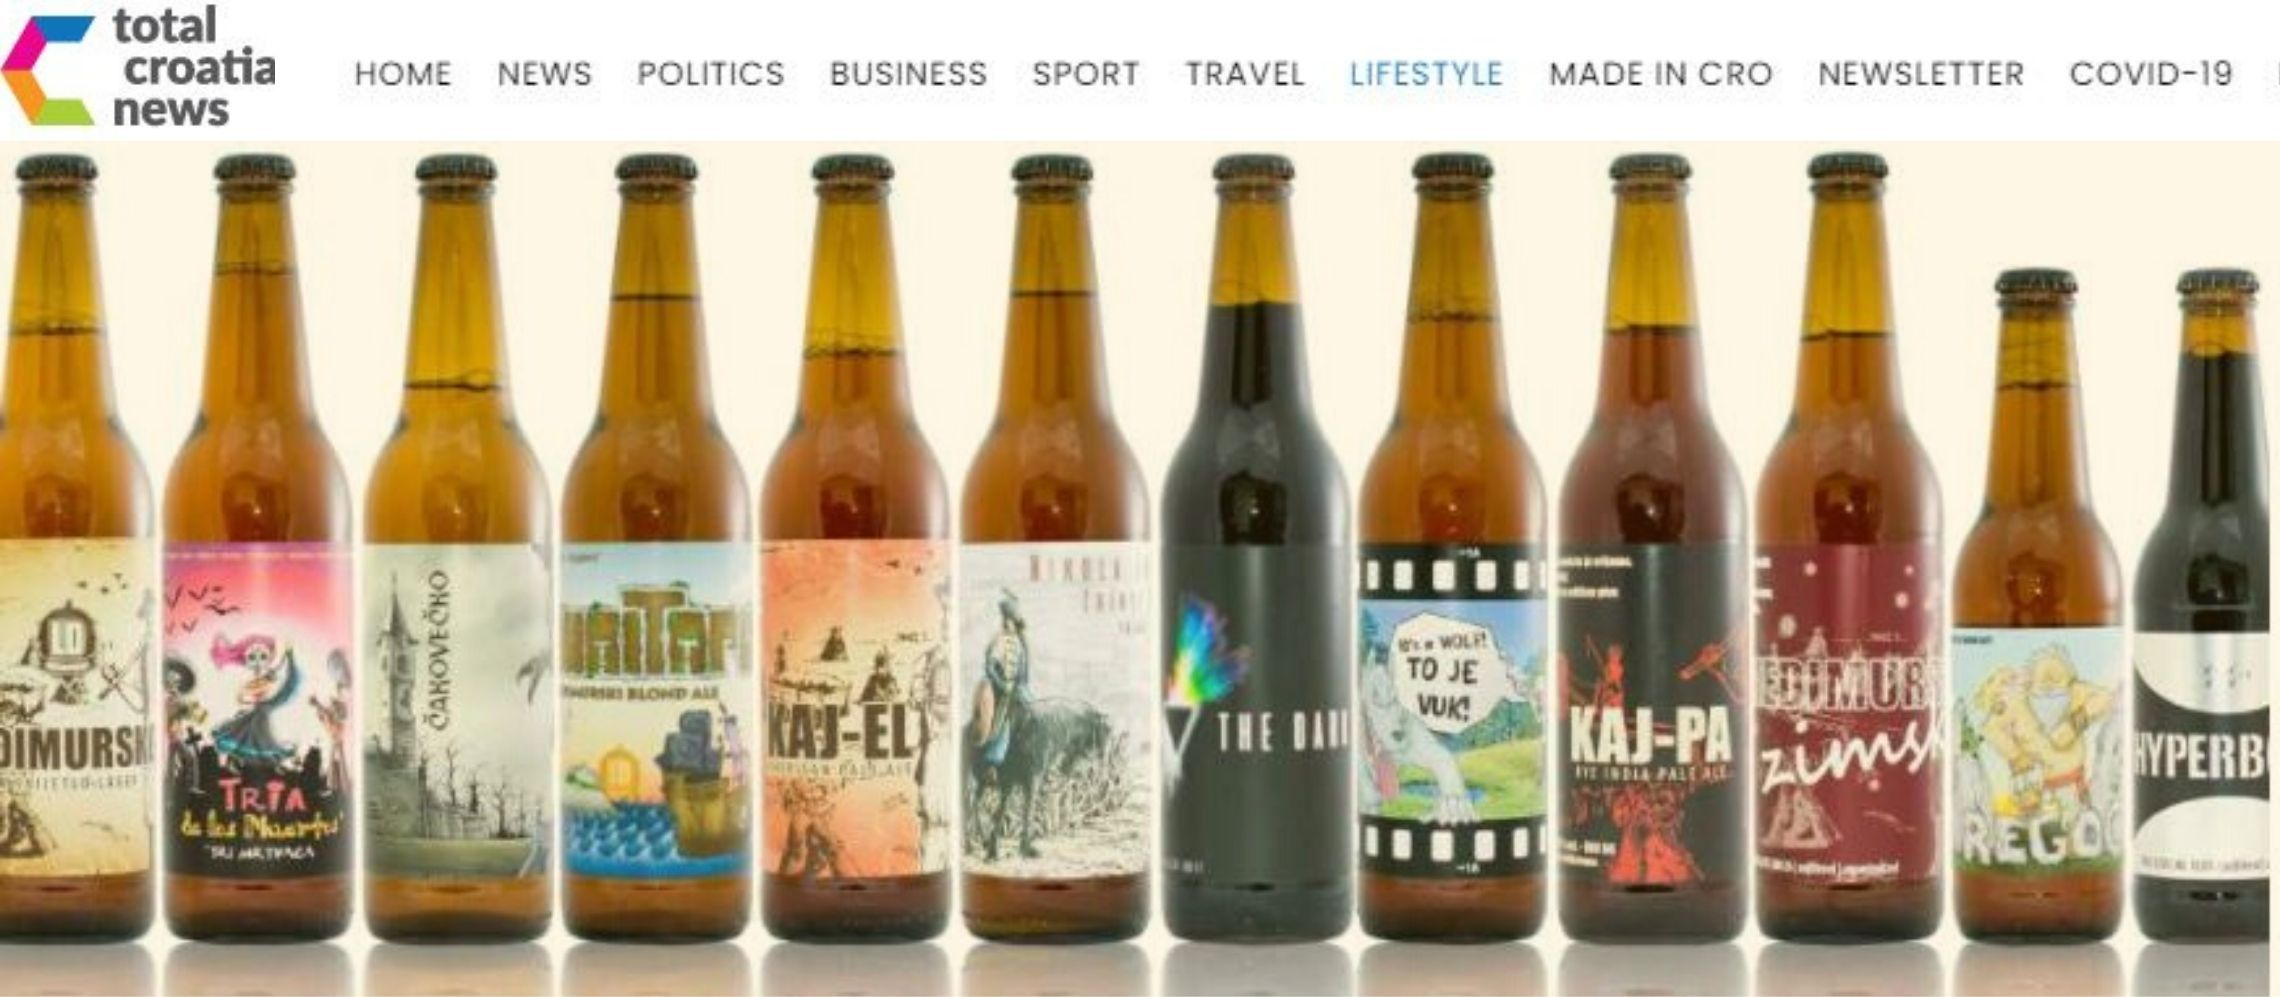 Photo for: Gold, Silver, and Best Beer Award for Međimurje's Lepi Dečki at London Beer Competition via Total Croatia News PR